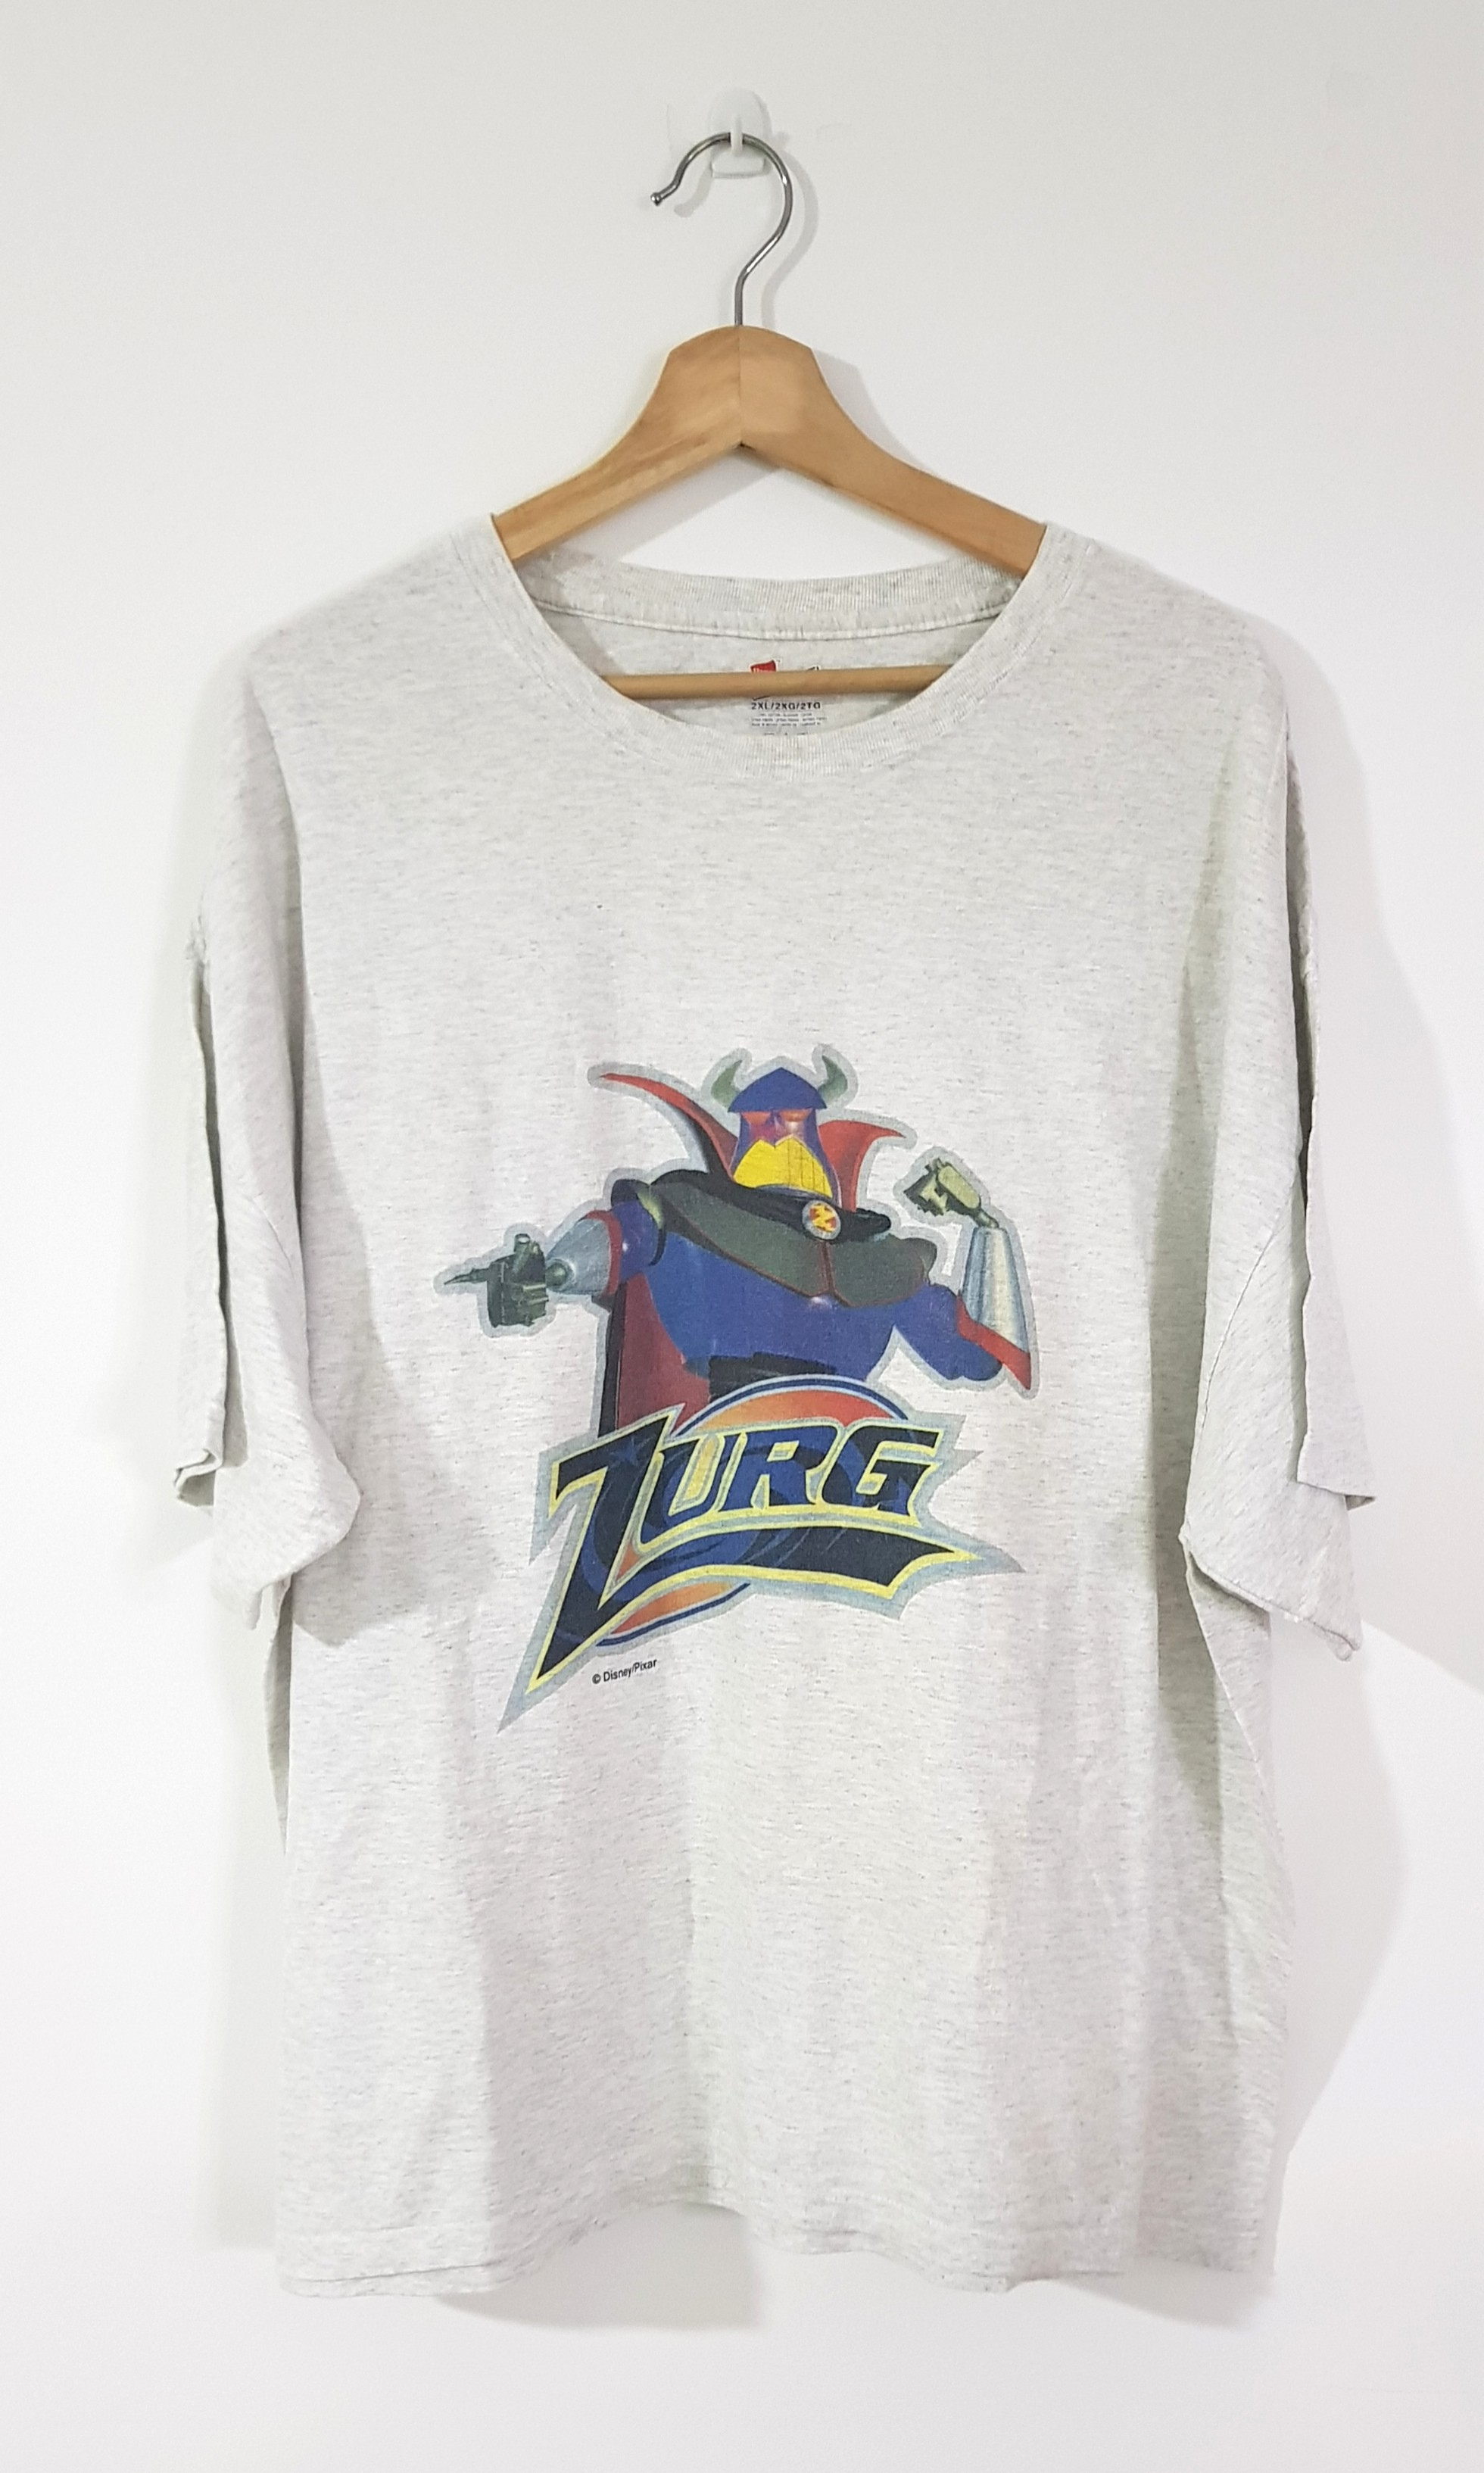 e4fea2935 Vintage Zurg Tshirt, Men's Fashion, Clothes, Tops on Carousell